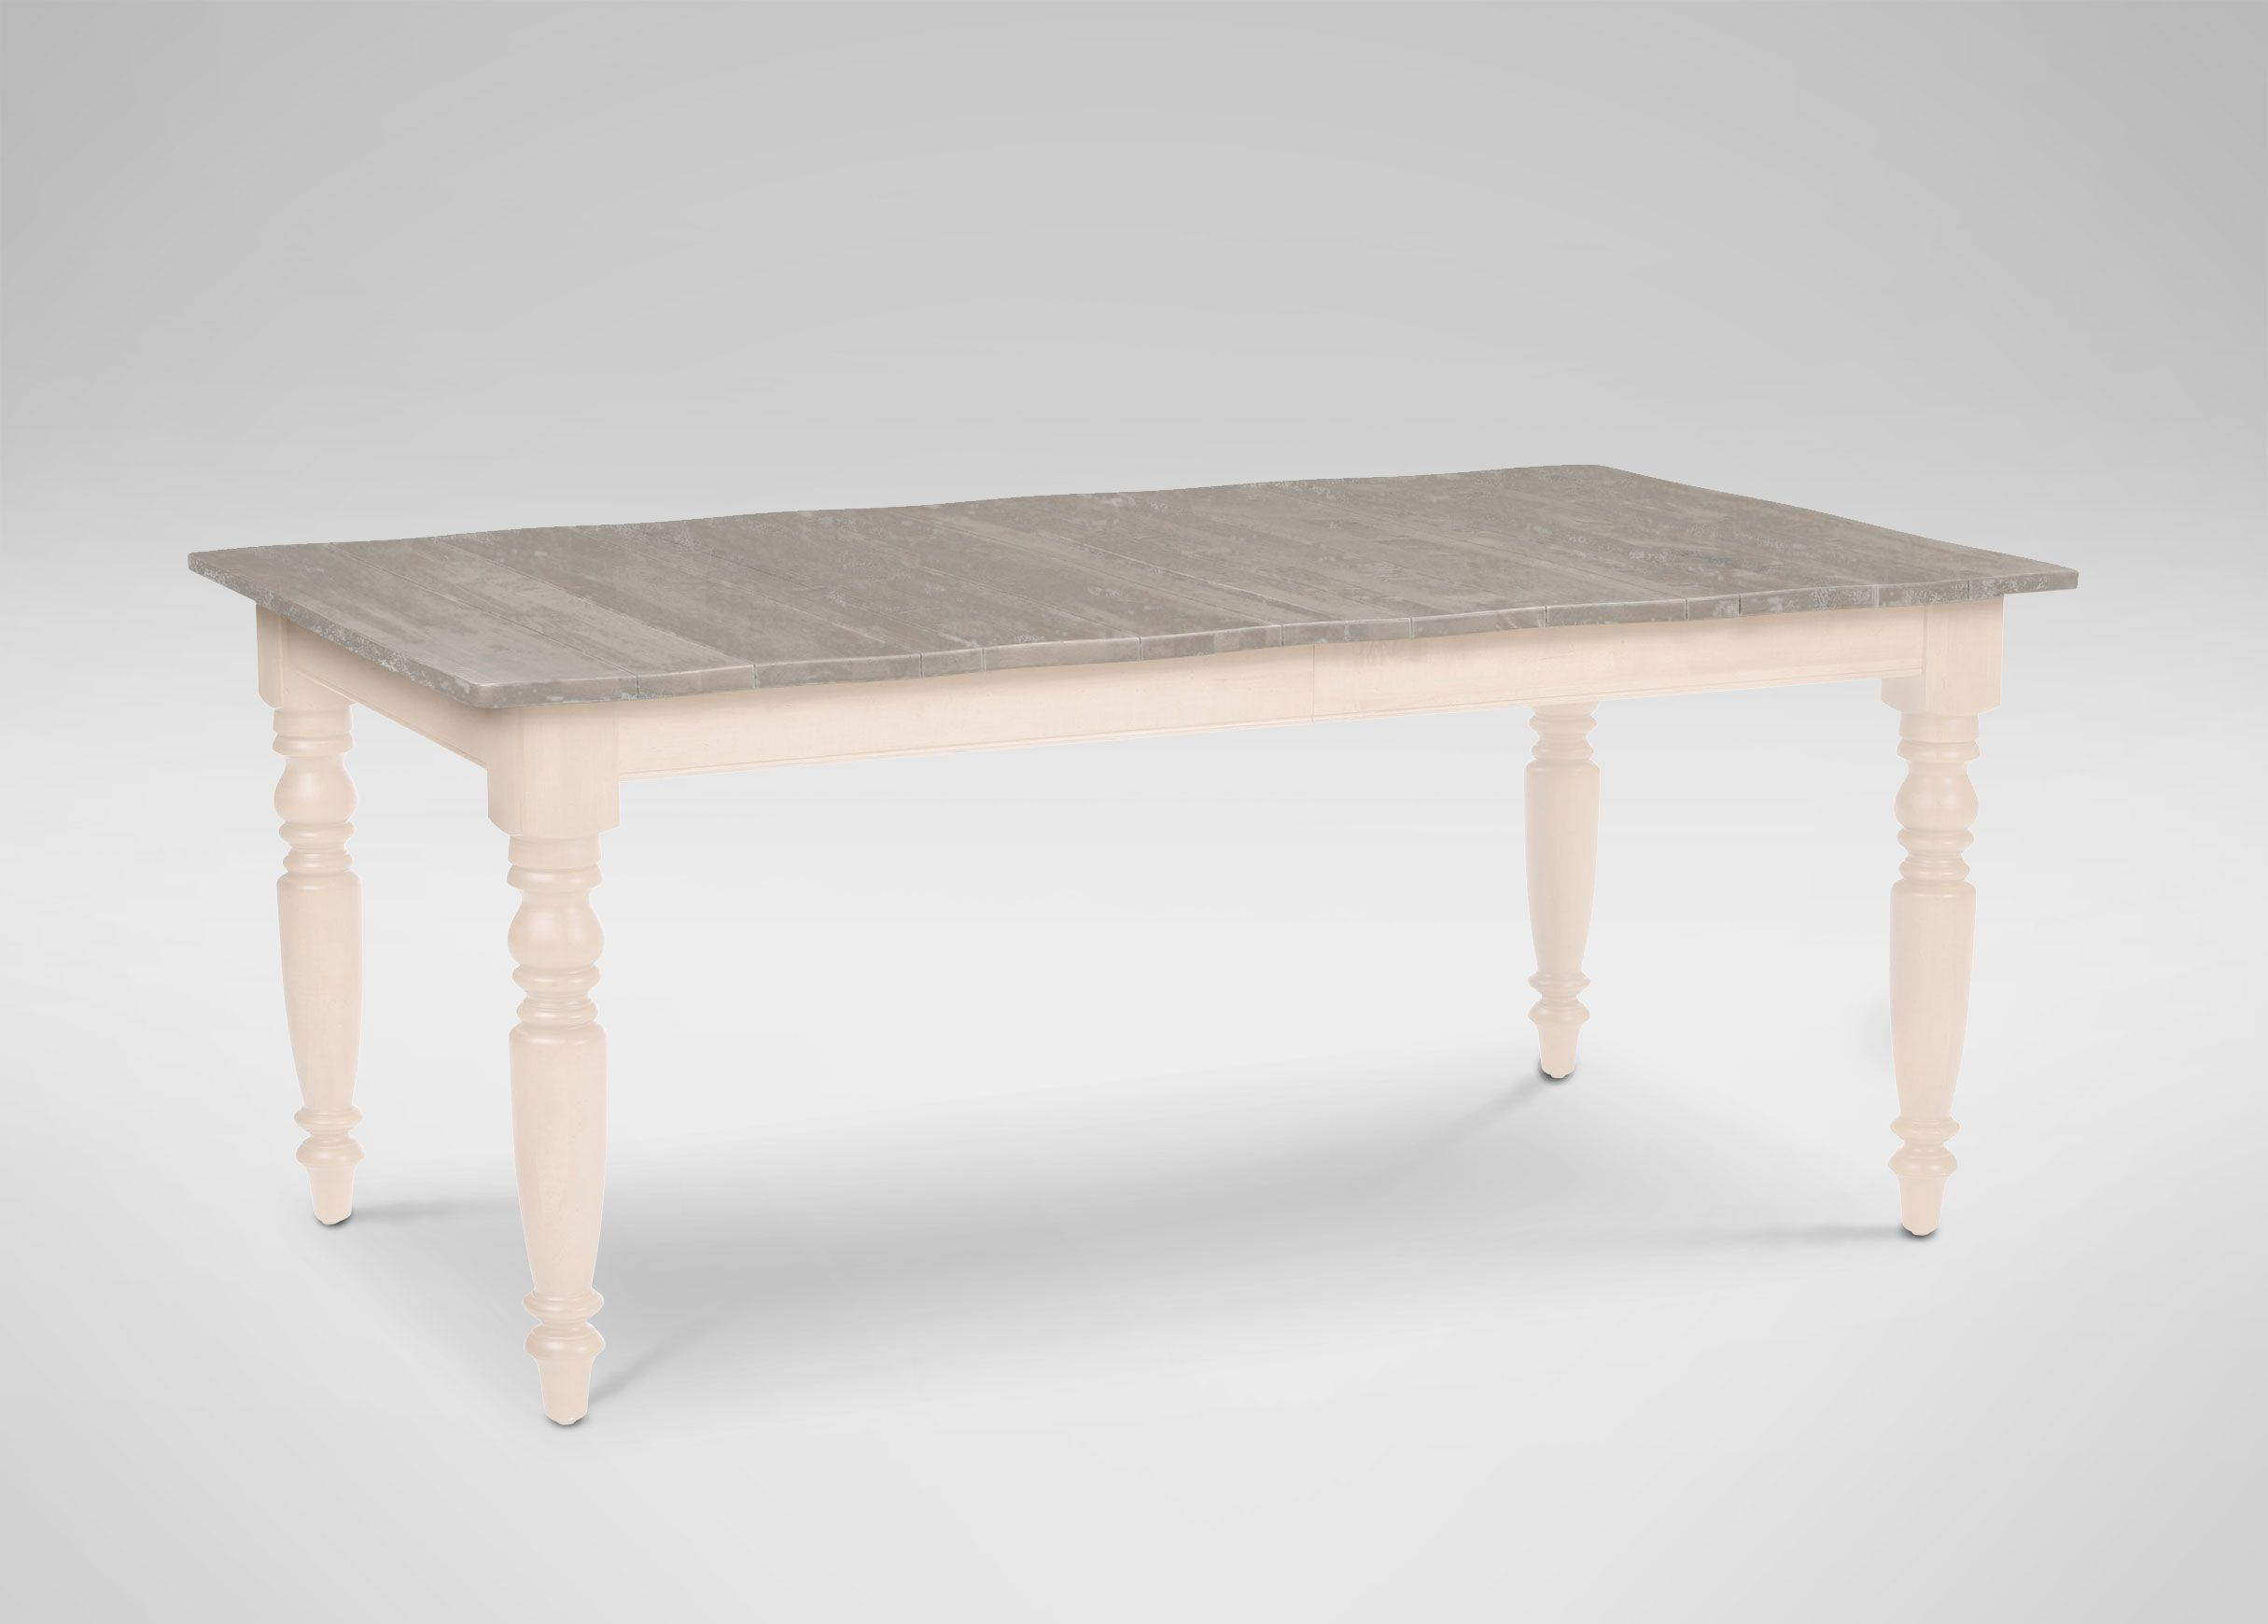 Miller Rustic Dining Table Ethan Allen would love this